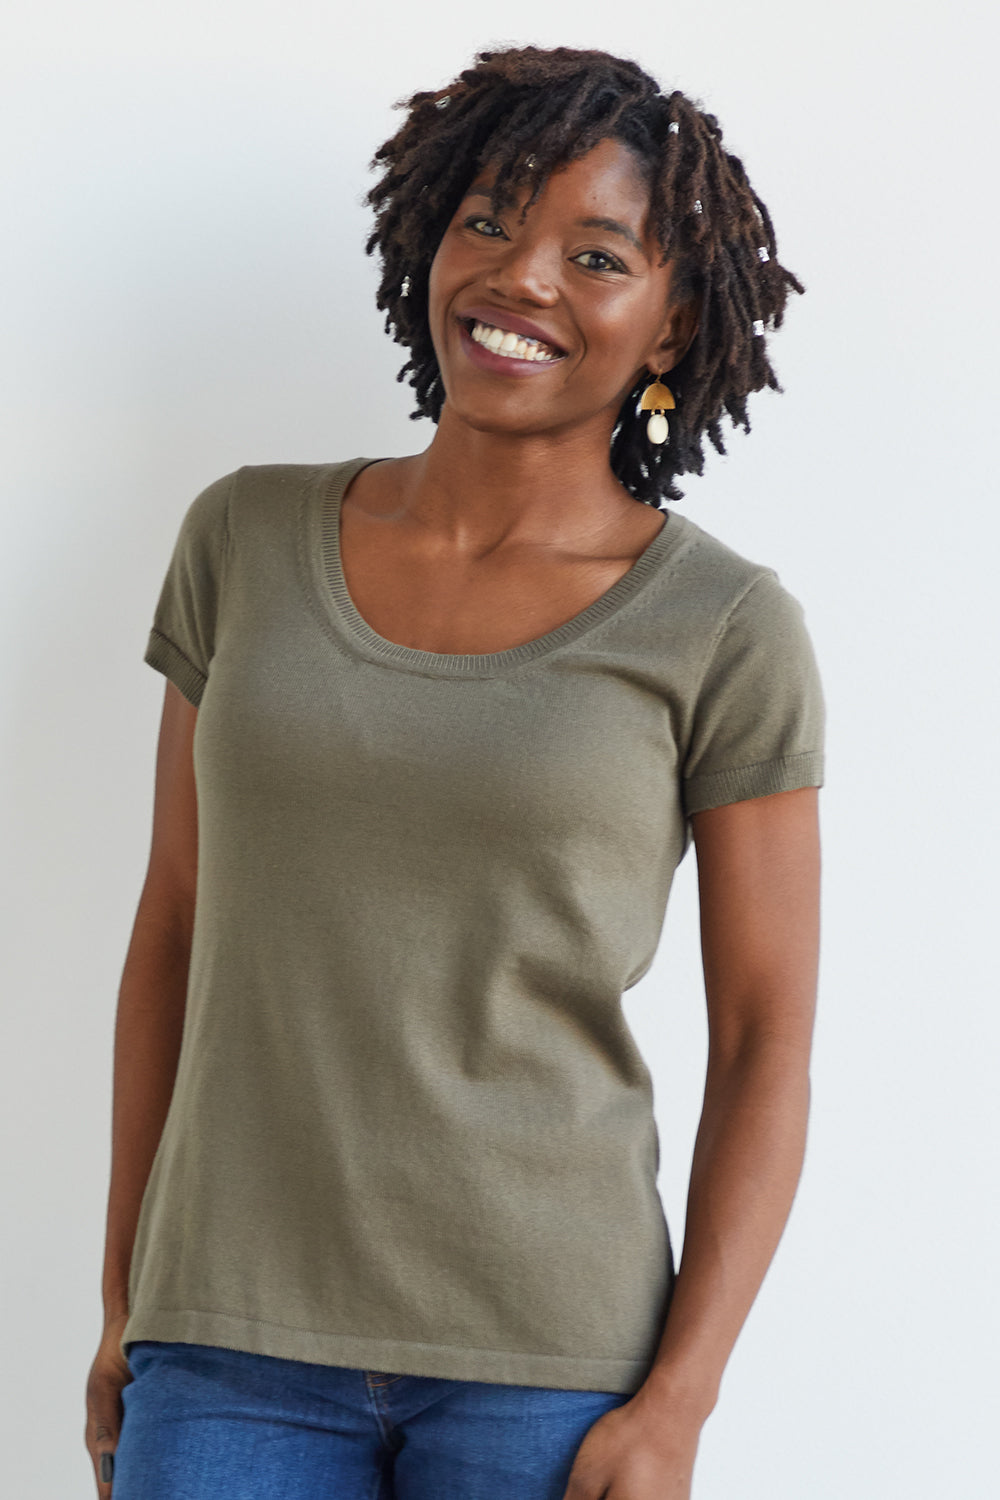 Womens Organic cotton Short Sleeve Sweater Tee Fatigue Olive Green - Fair Indigo